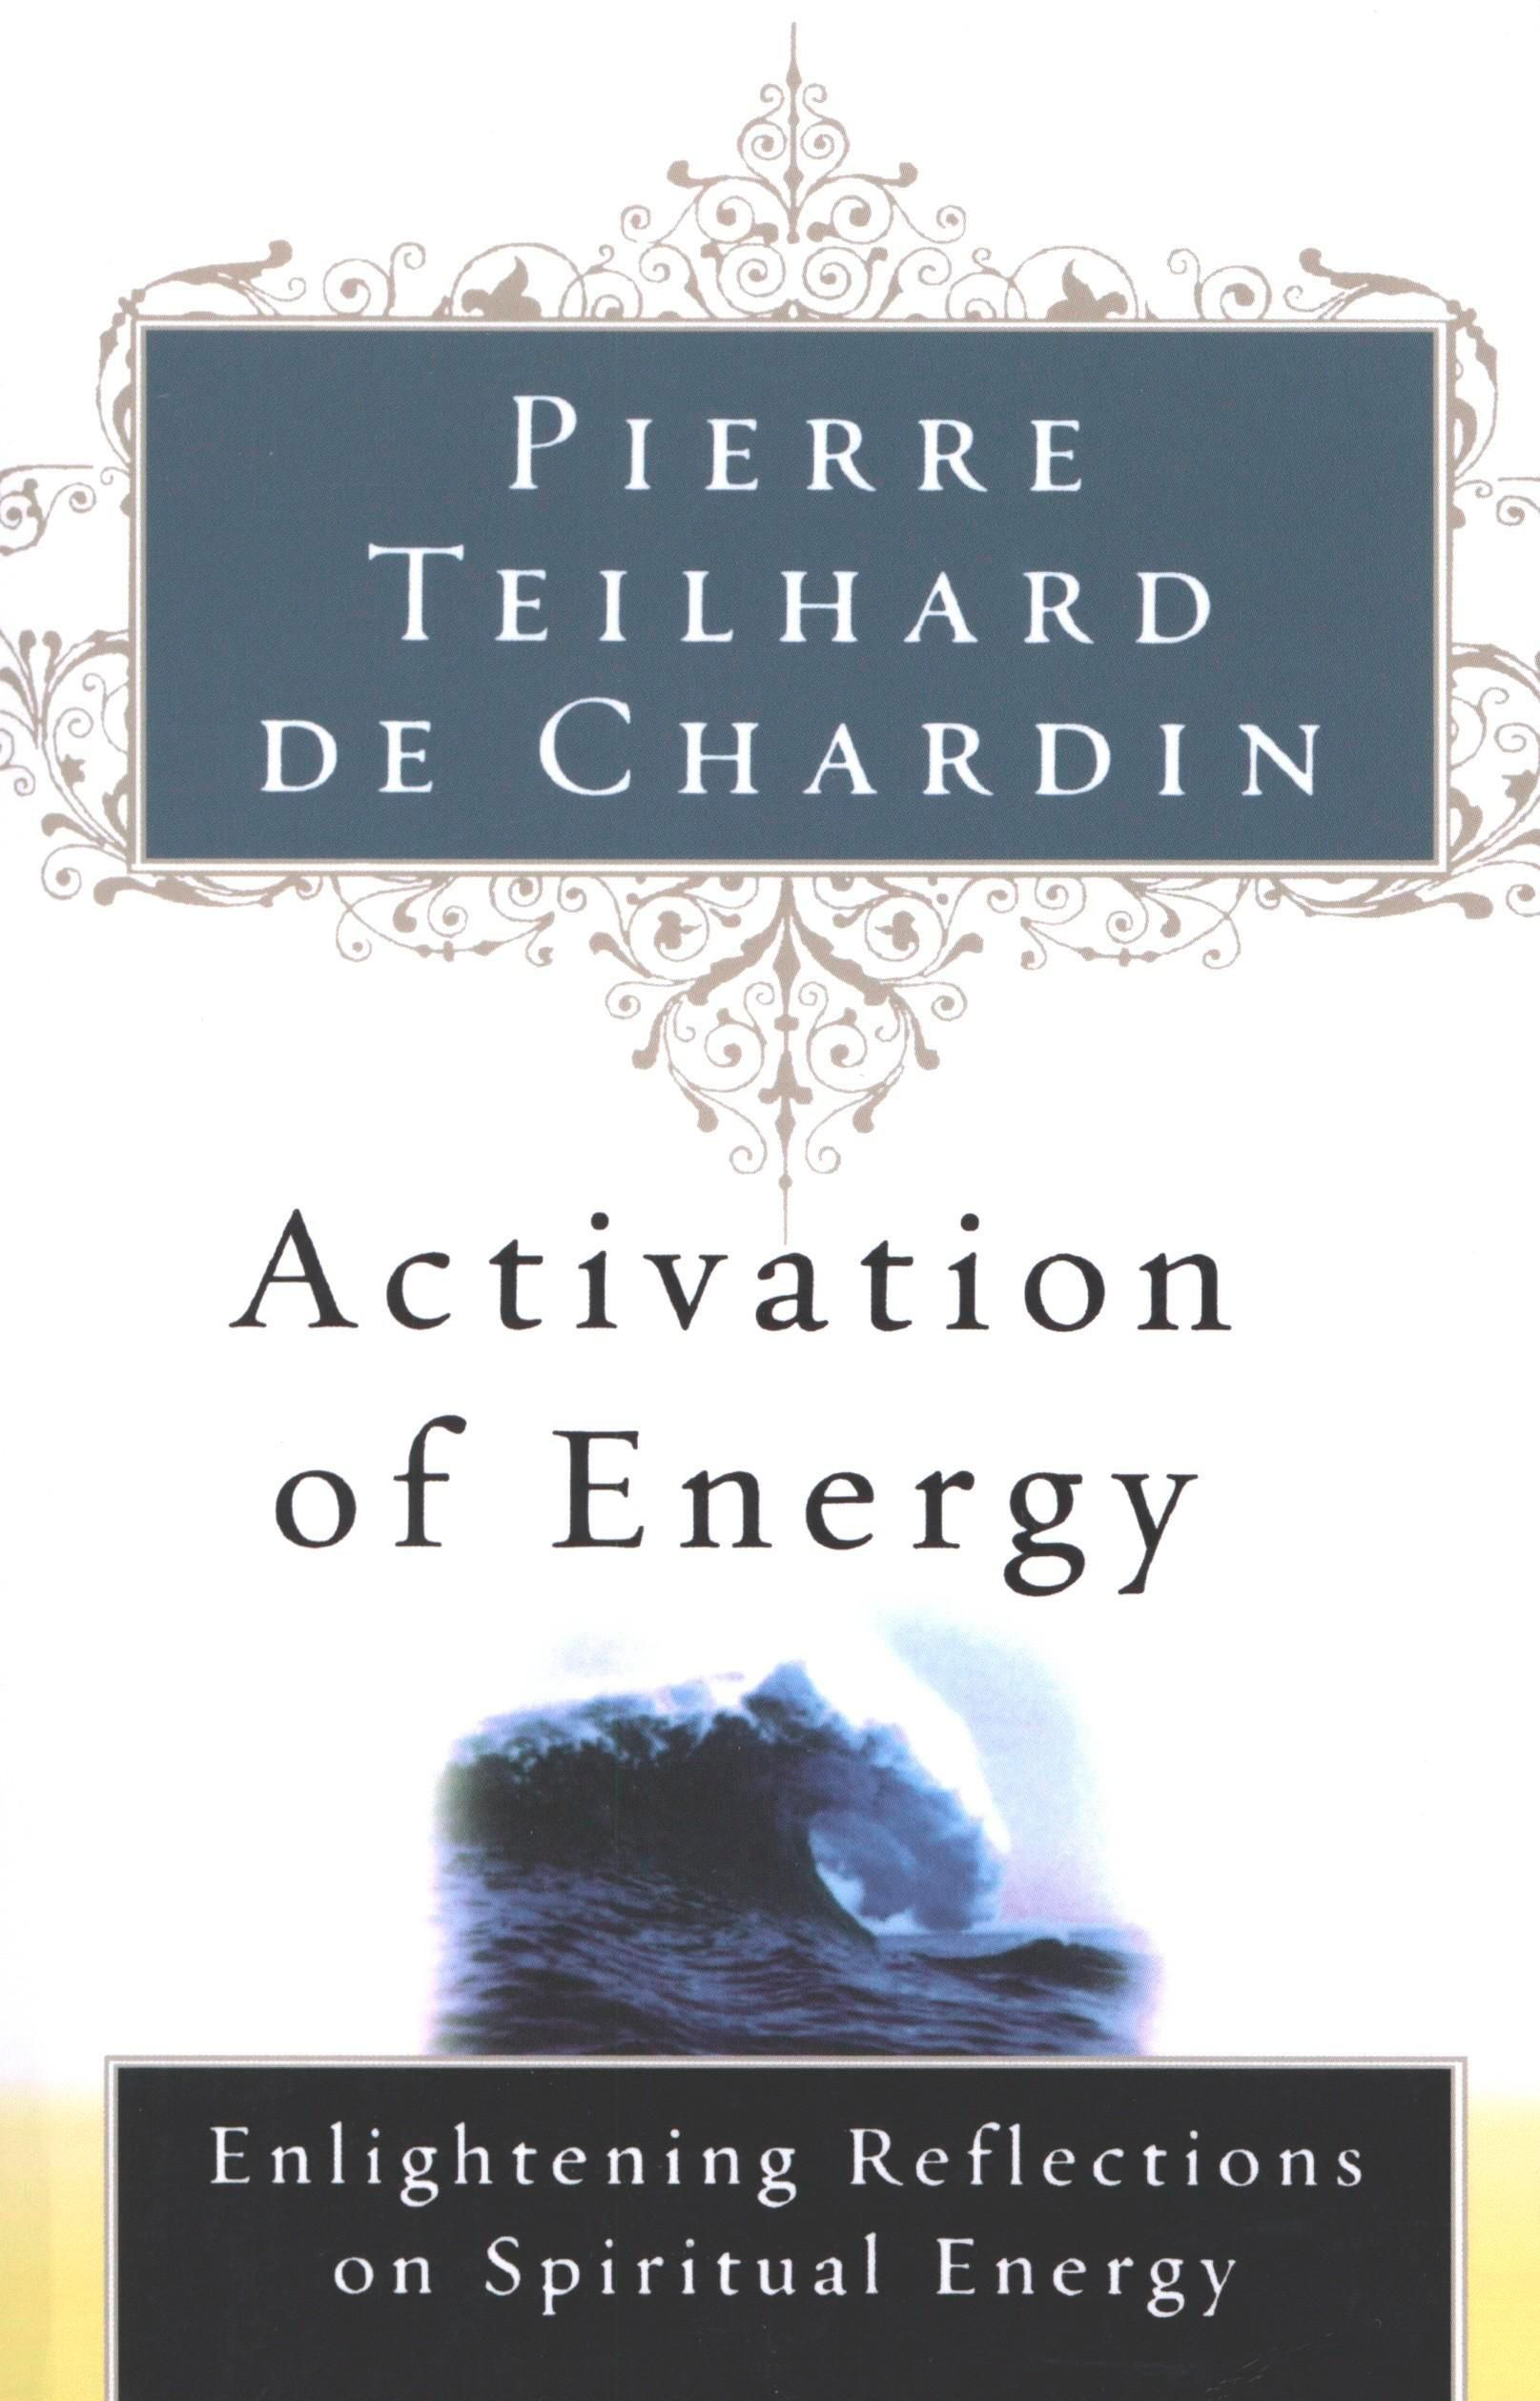 Activation Of Energy By: Pierre Teilhard de Chardin